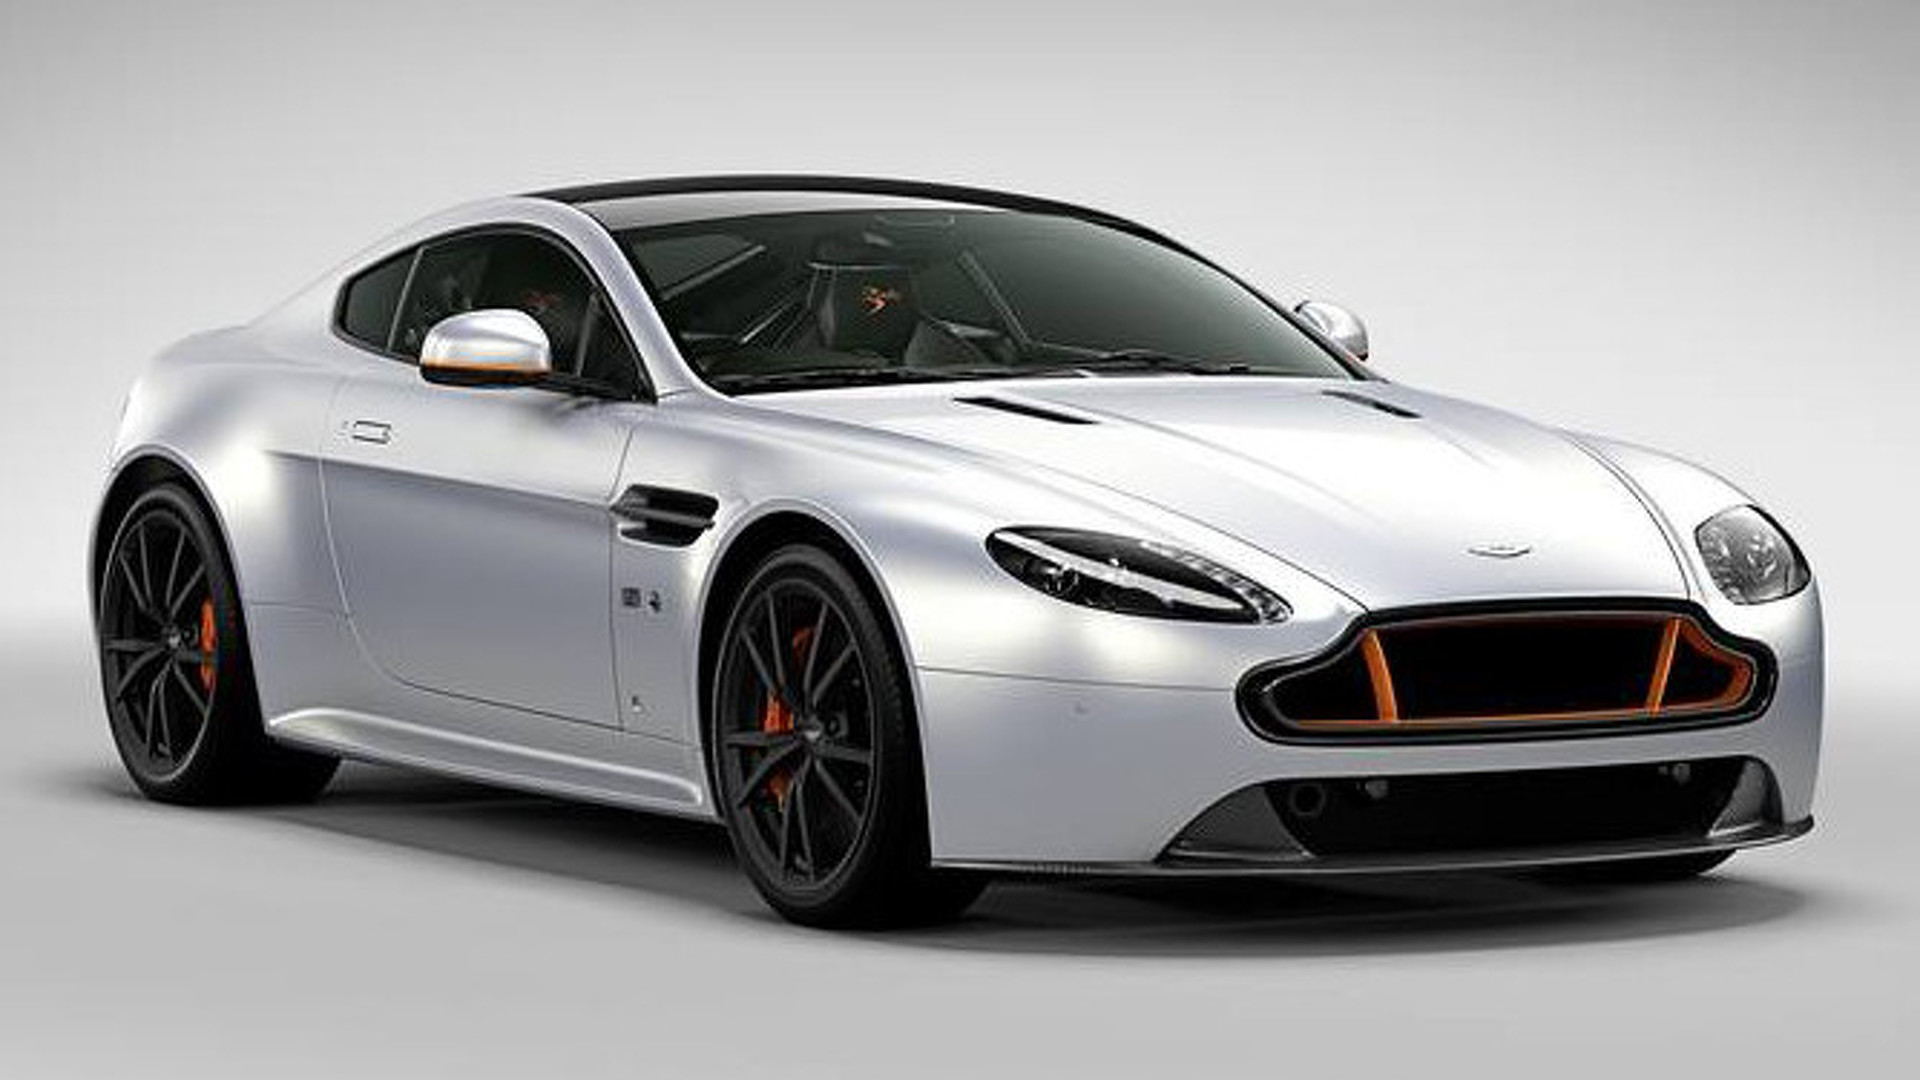 Aston Martin V Vantage S Blades Edition Introduced Video - Aston martin vantage s